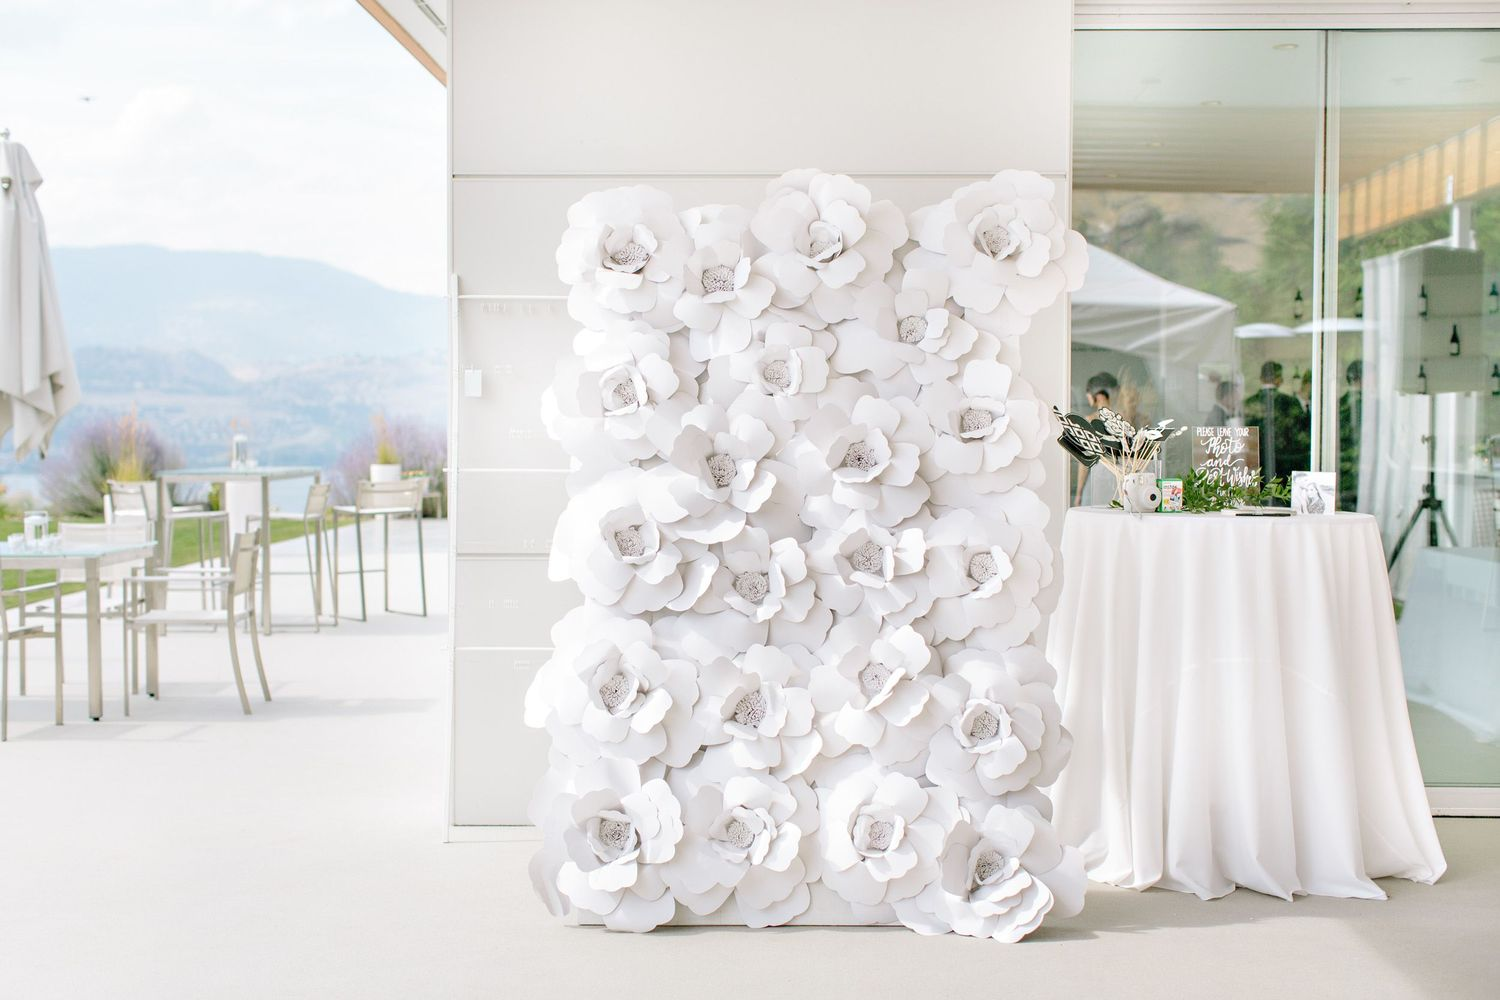 painted rock winery reception decor wall